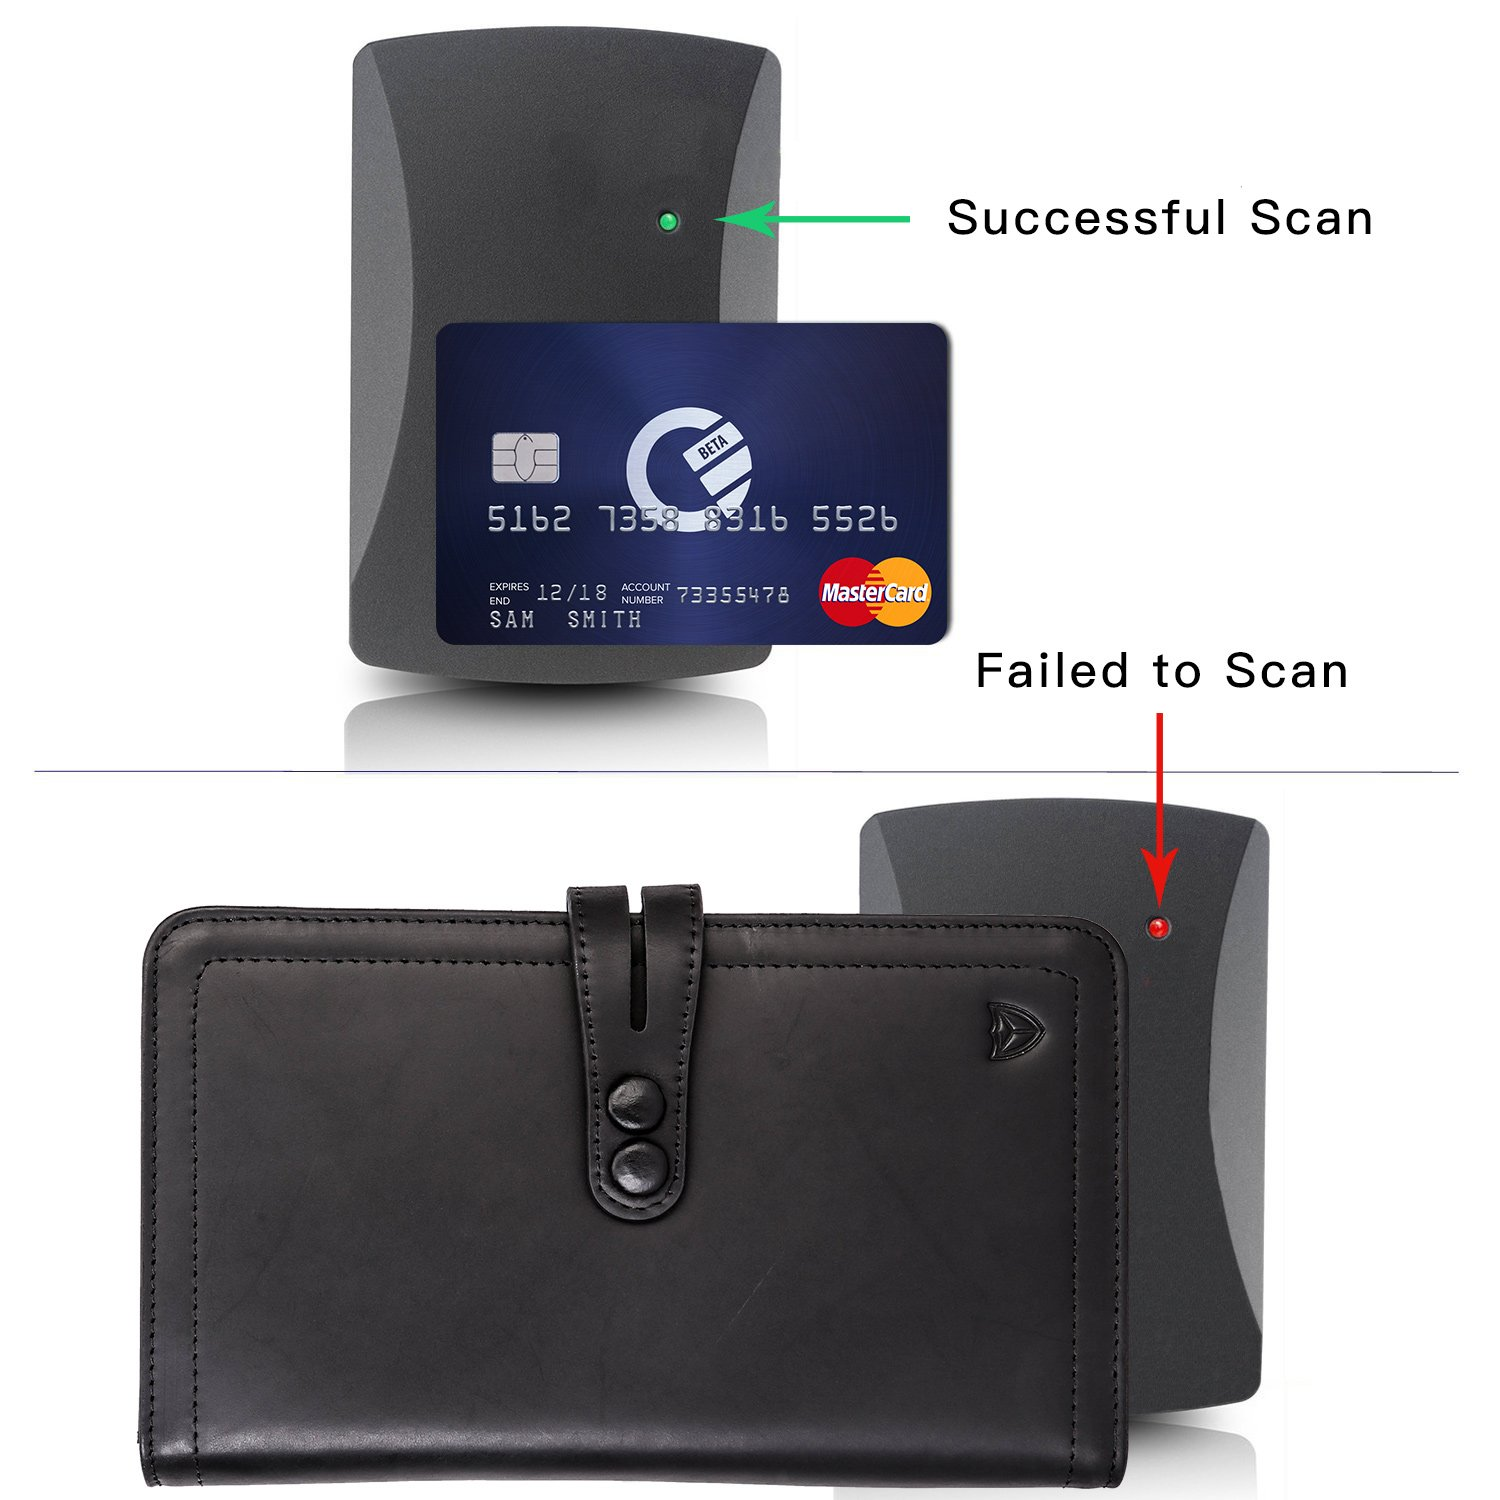 7a0b43f92 Travel Wallet with RFID Blocking Awesome Passport Wallet Credit Cards  Holder Document Organizer Genuine Leather 4800662 larger image